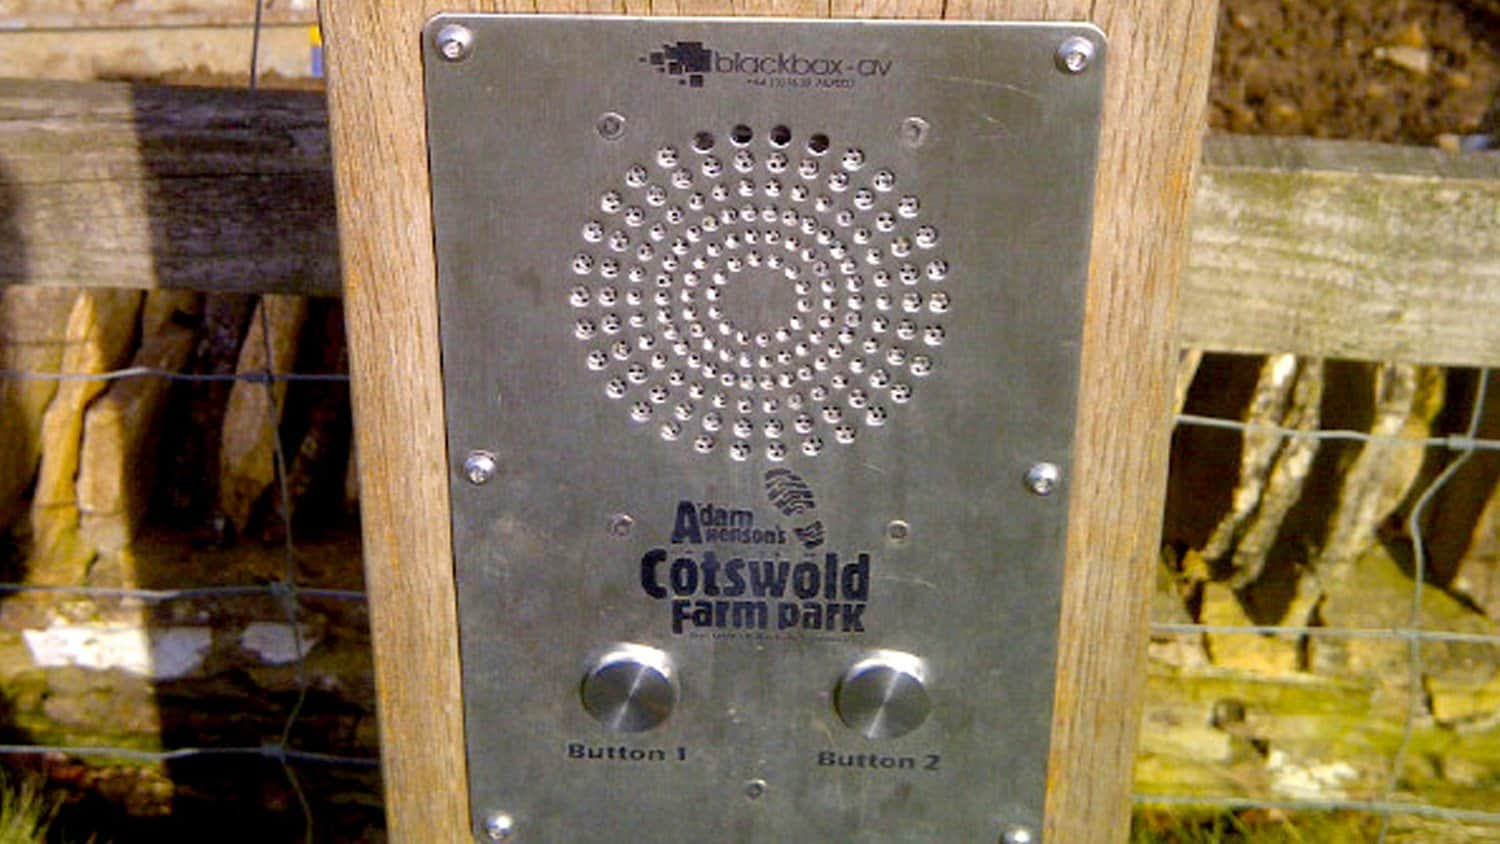 Solar Audio Post supplied by Blackbox-av for Adam Henson's Cotswold Farm Park